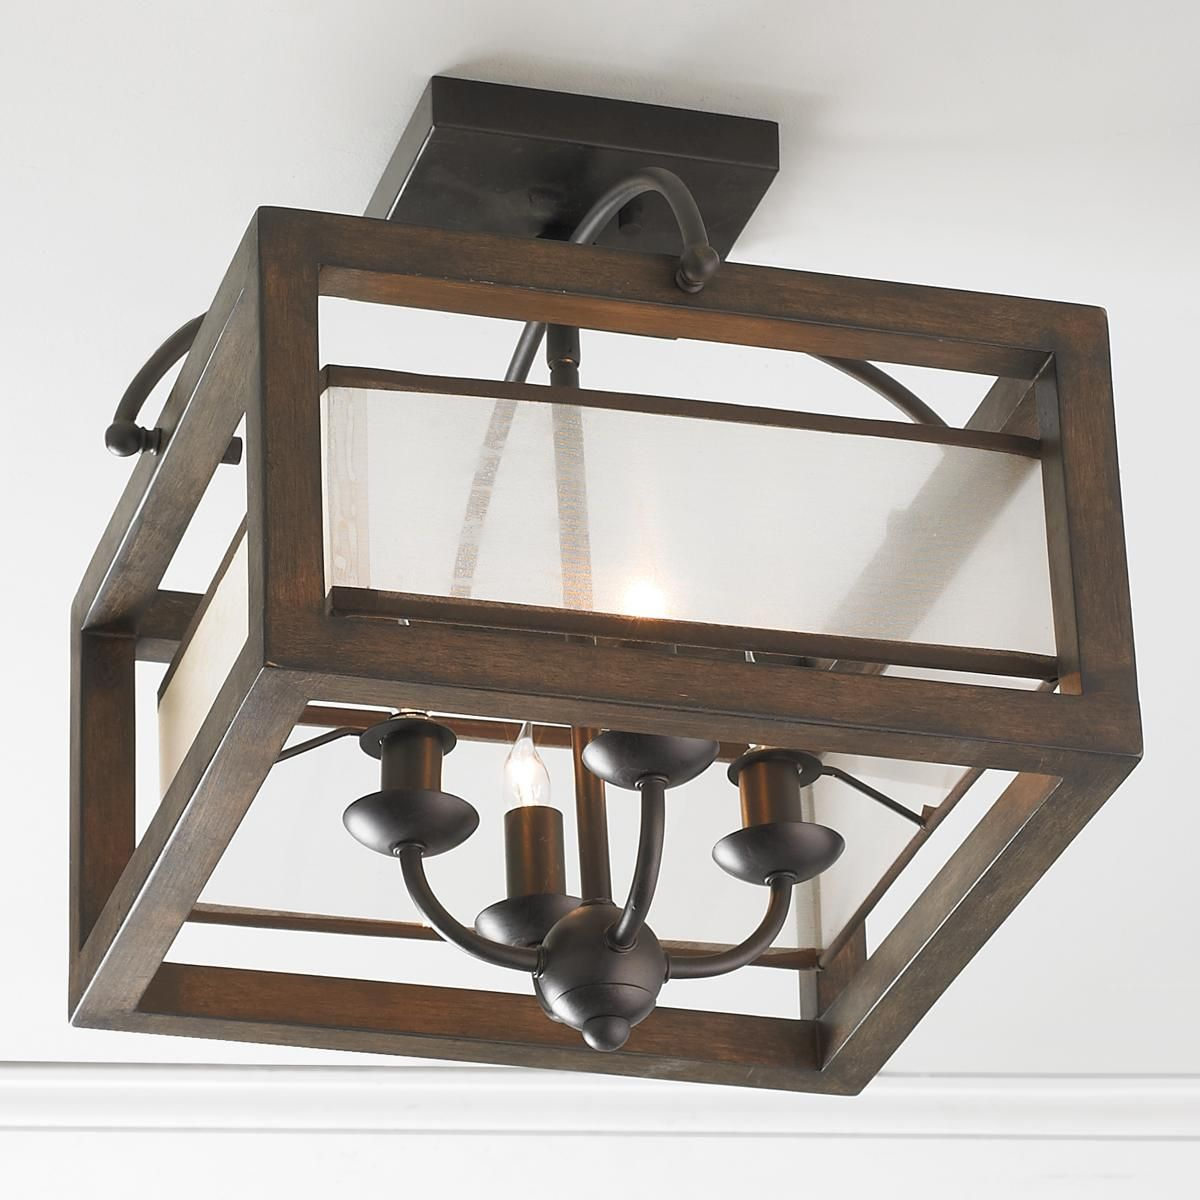 Rustic Ceiling Light Rustic Light Fixture Rustic Wood: Square Wood Frame And Sheer Ceiling Light A Rustic Wood